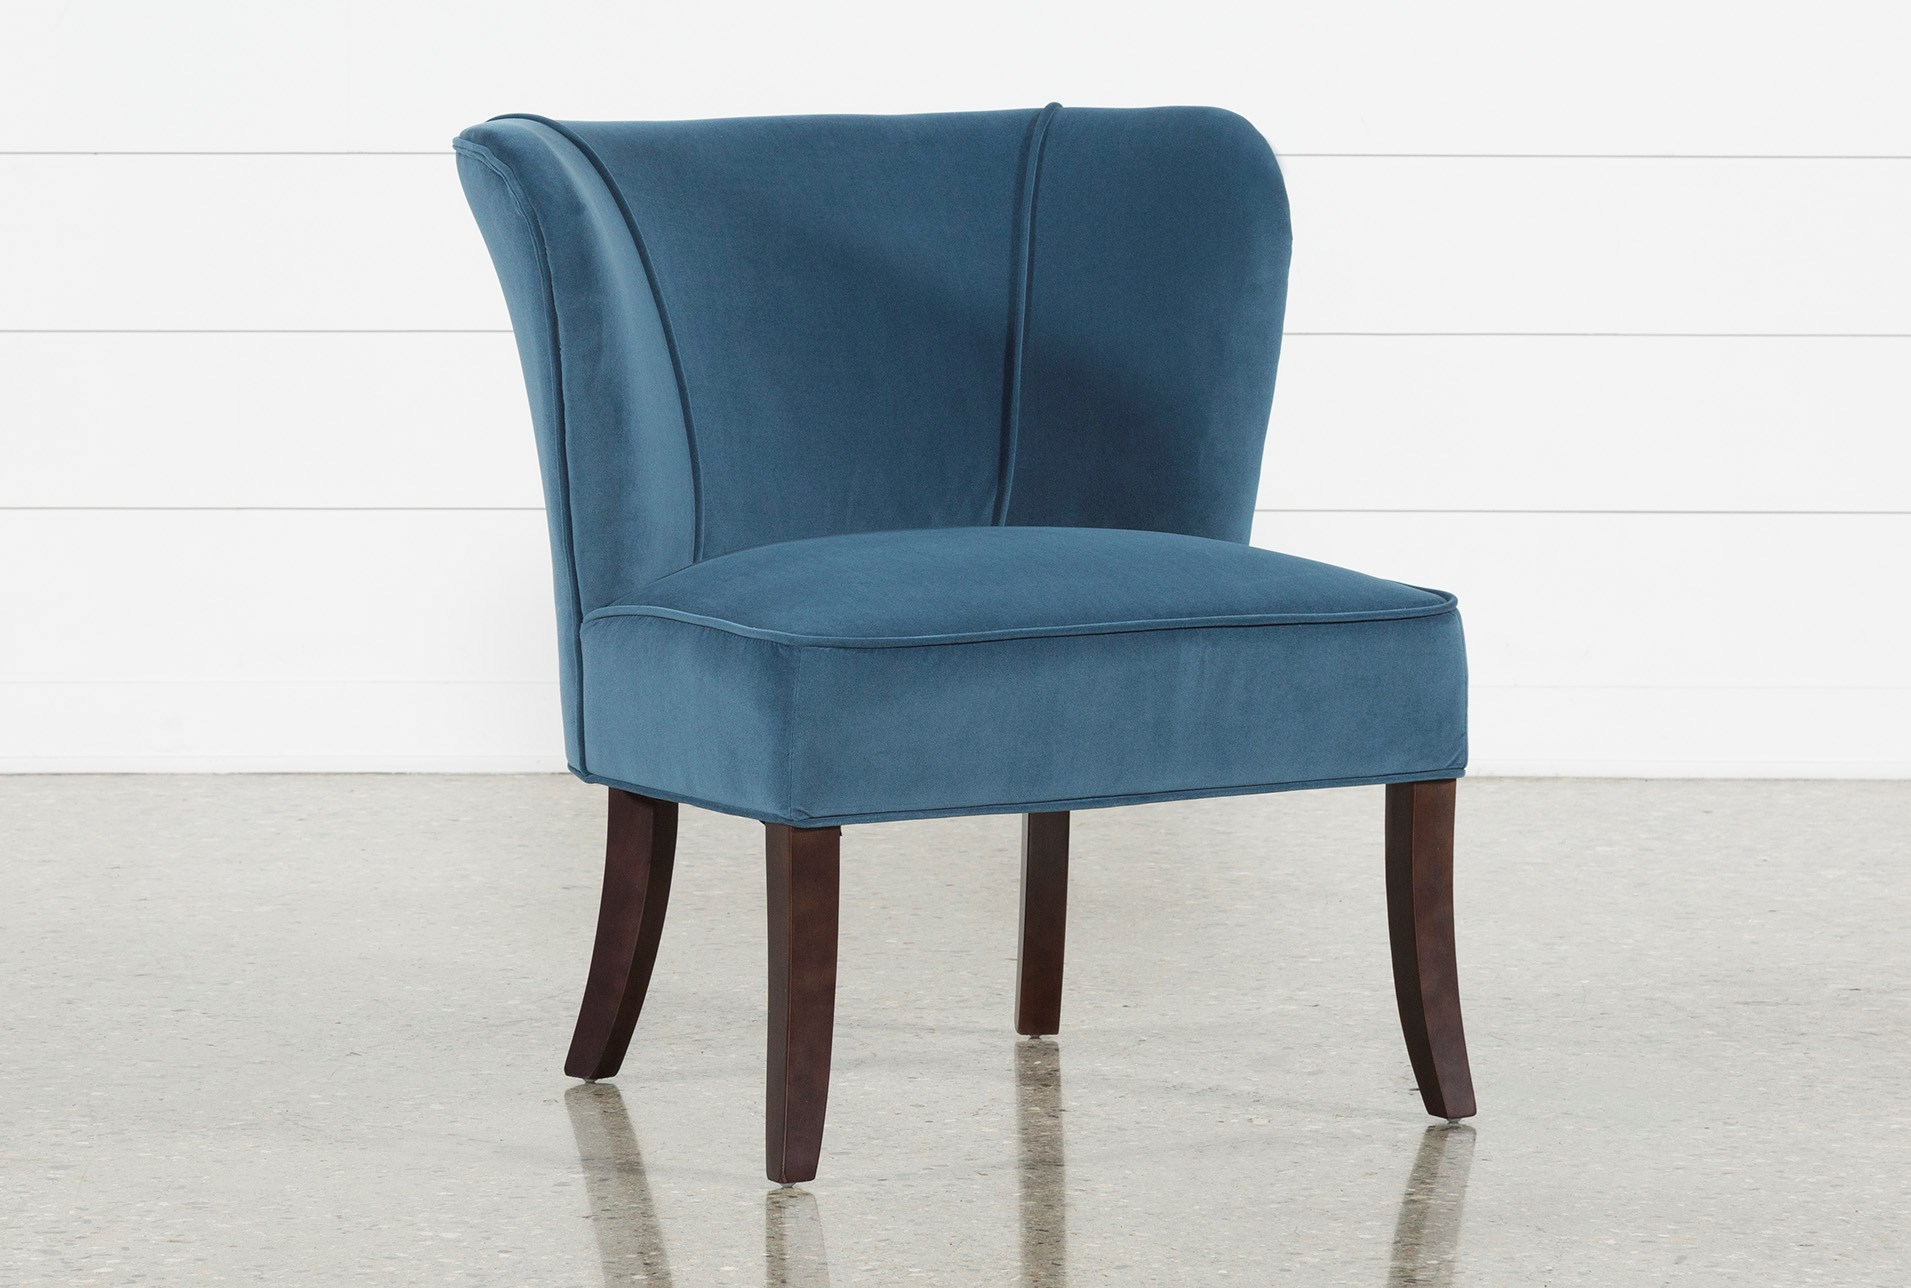 Krista blue accent chair qty 1 has been successfully added to your cart